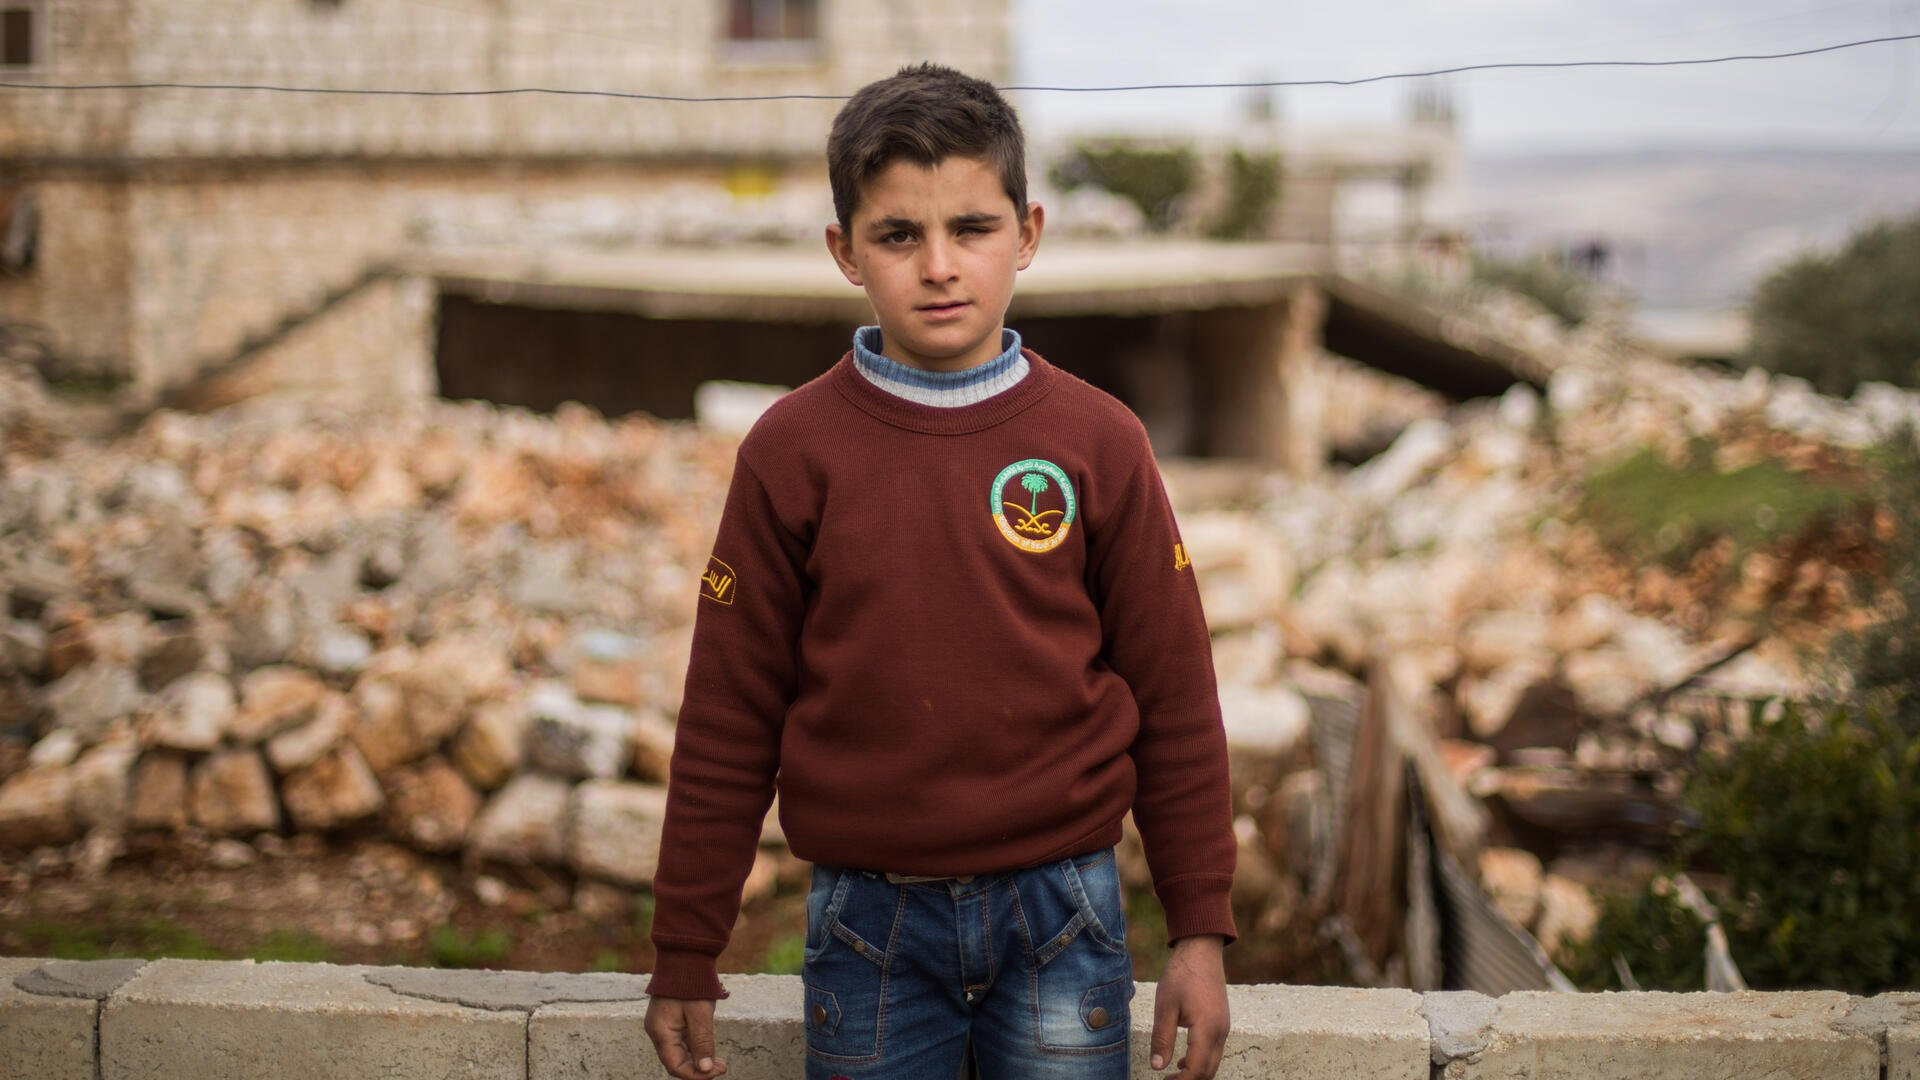 Ten-year-old Ali stands in front of his family's home which was damaged by an airstrike.